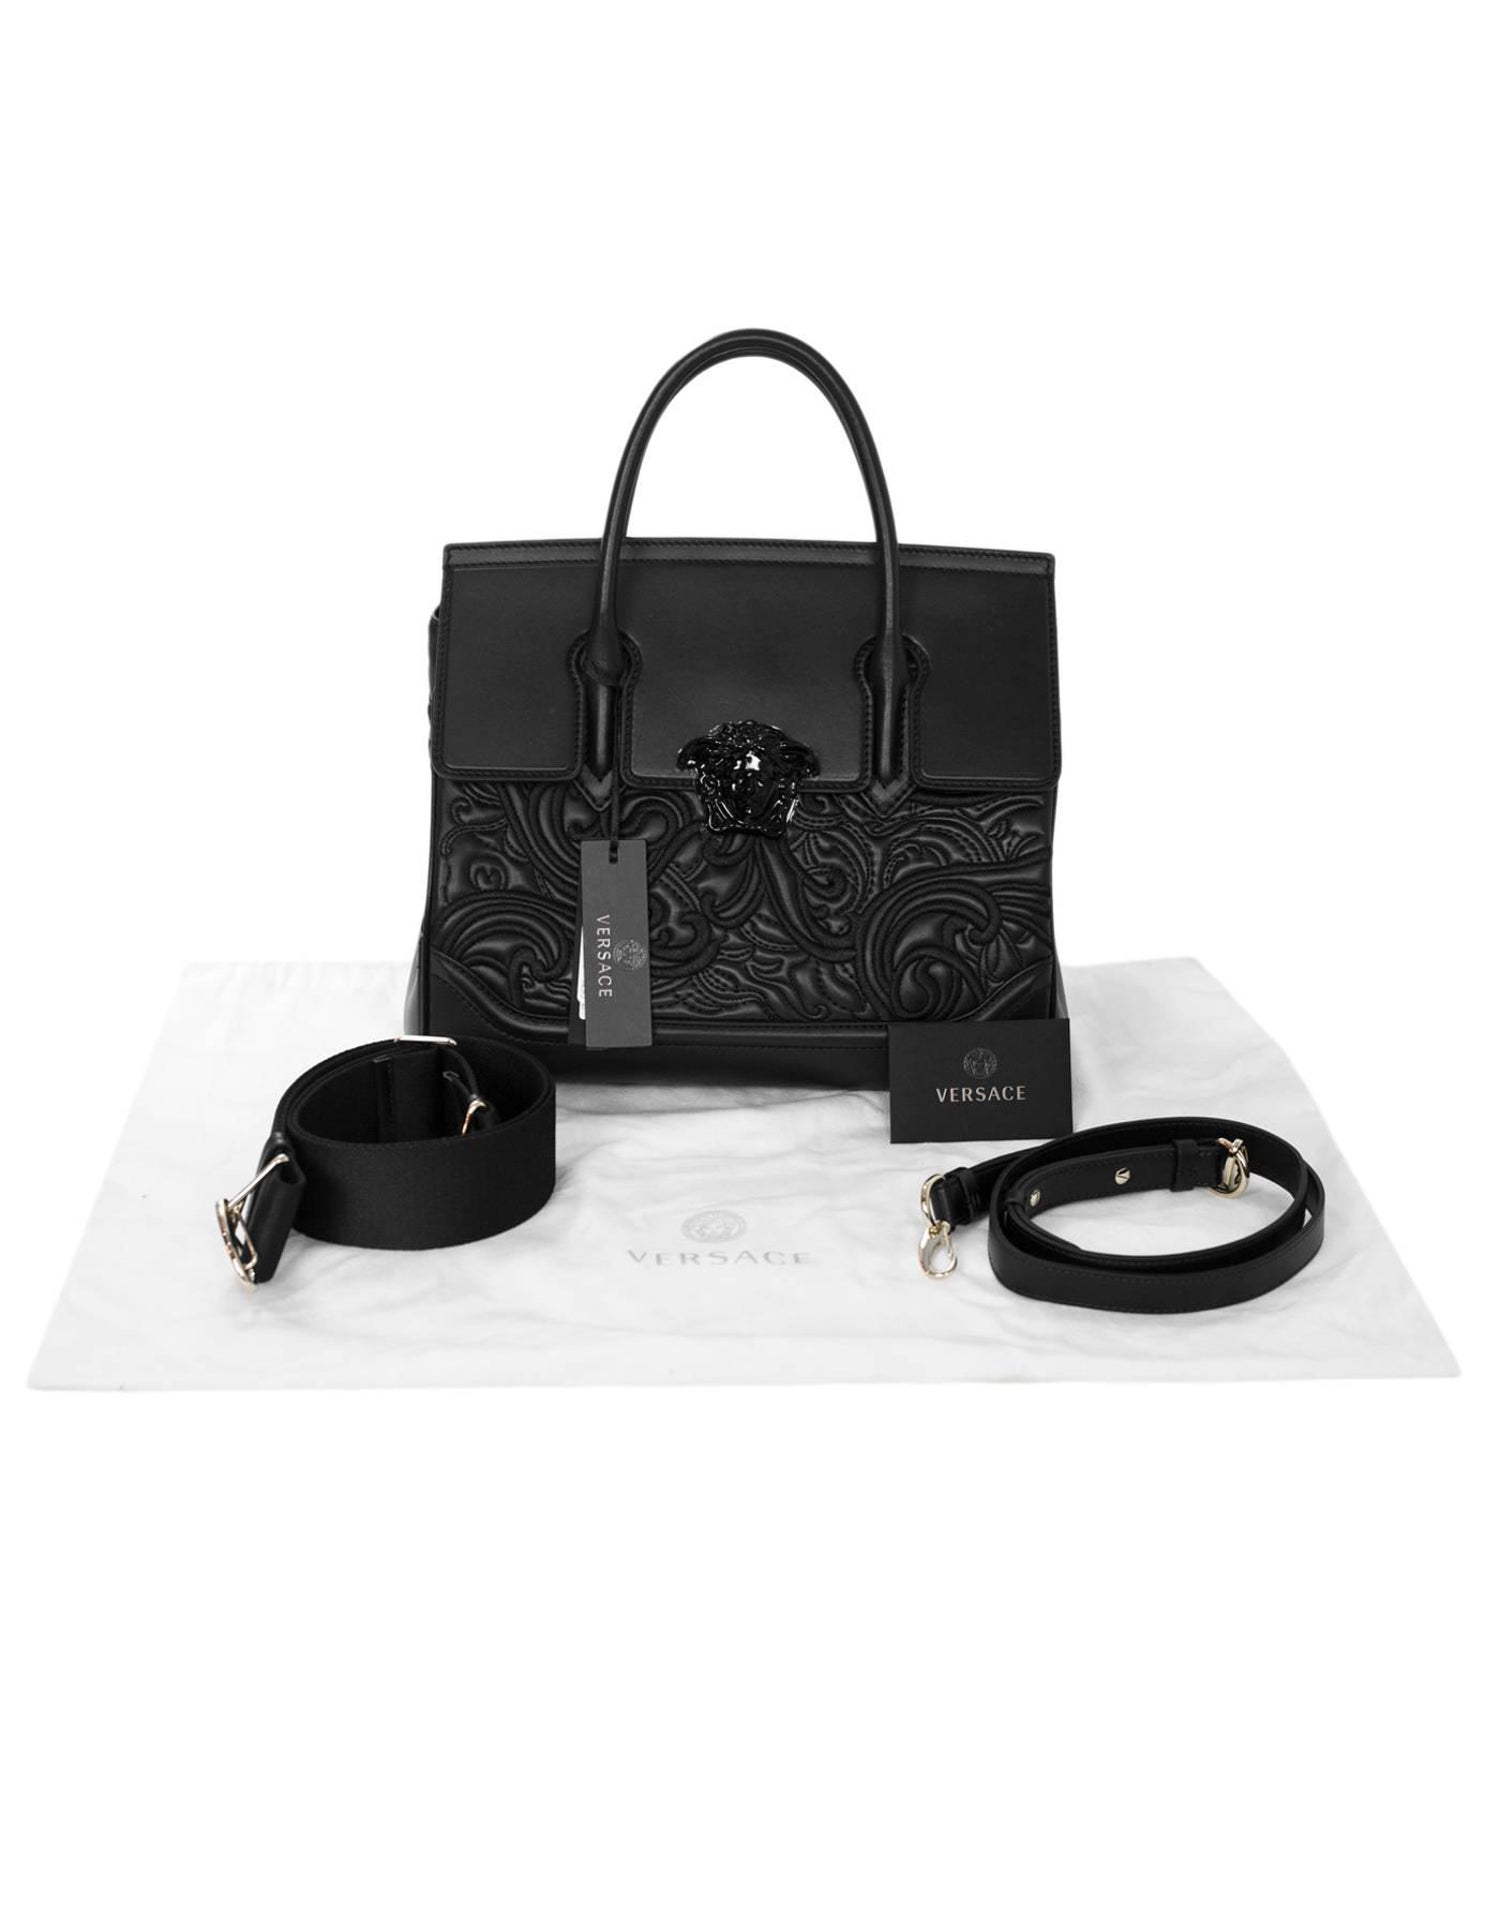 7ee9a40a3f Versace Black Medium Baroque Empire Palazzo Bag - NWT For Sale at 1stdibs